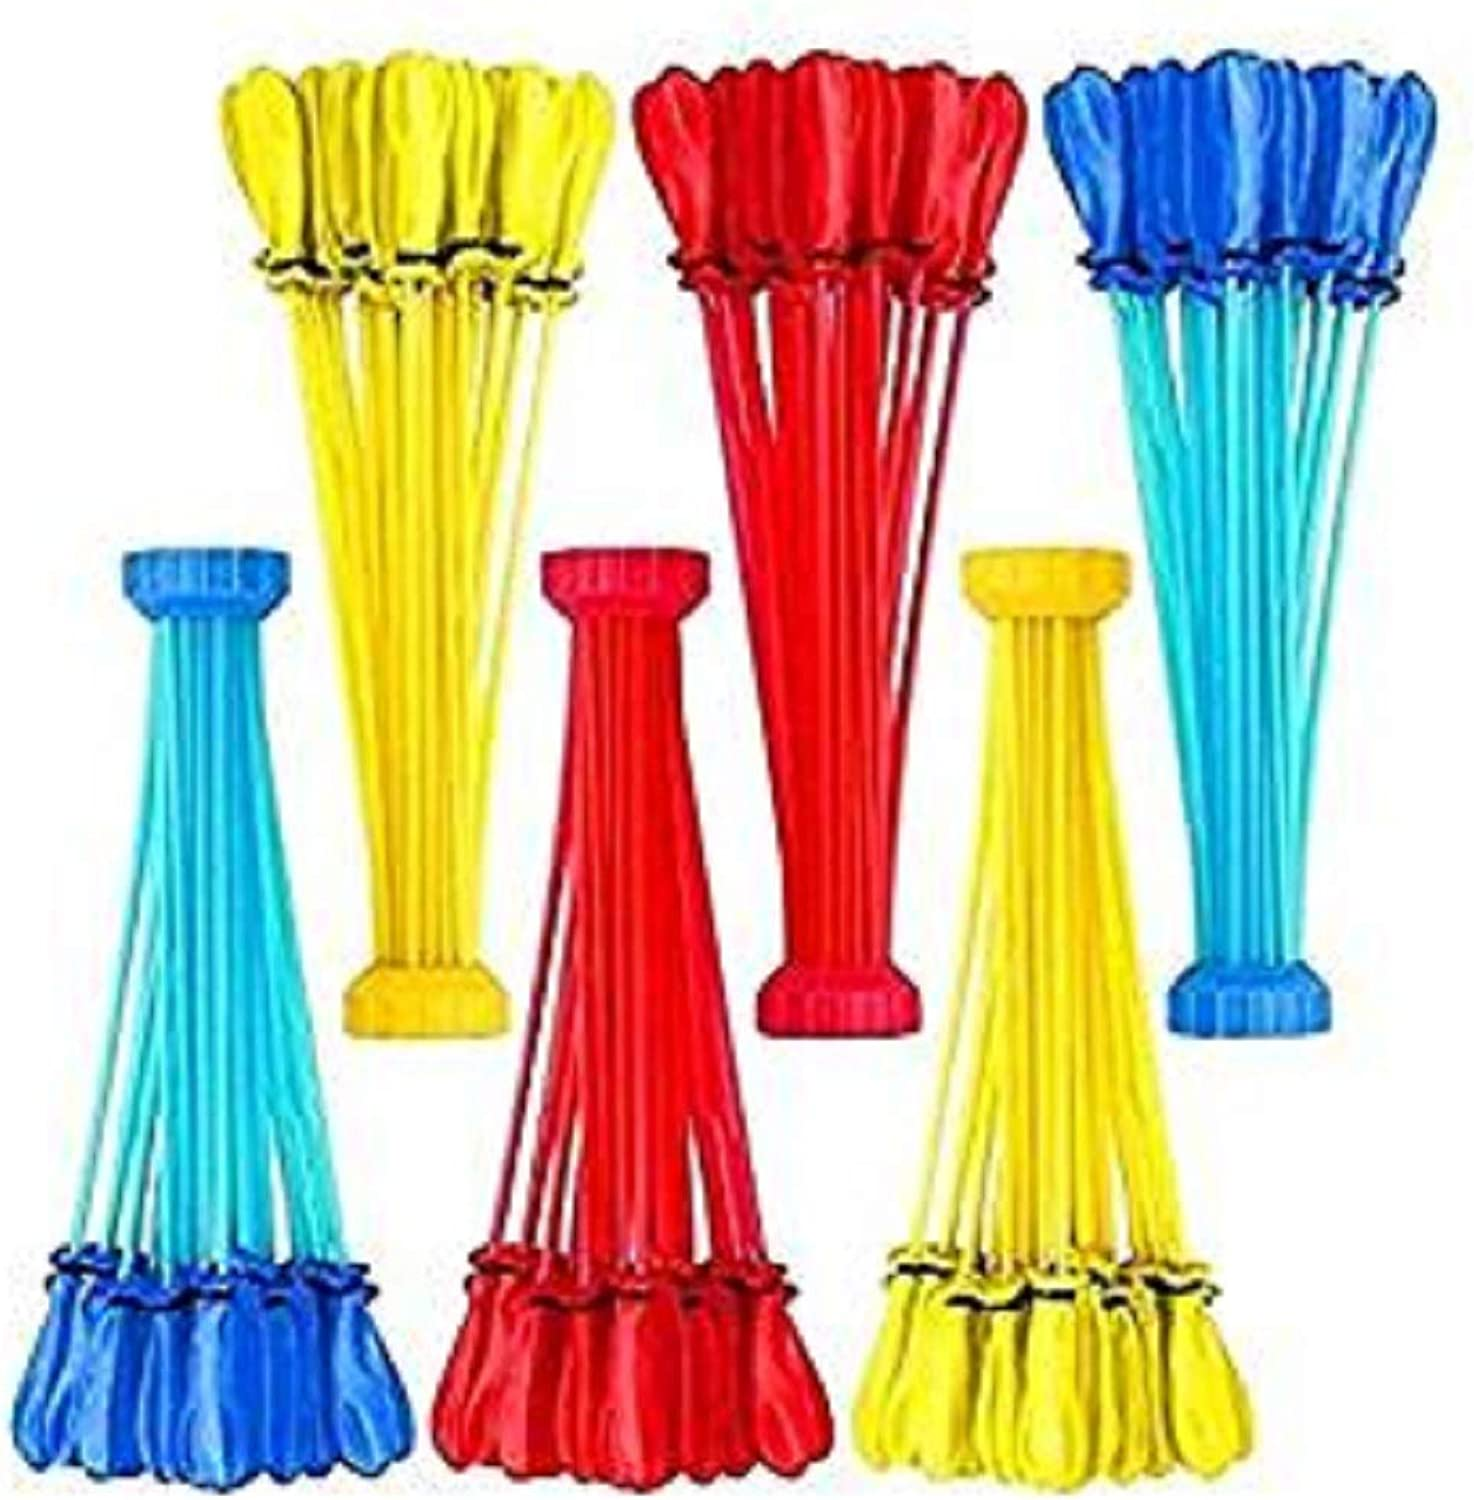 200 Party Pack Bunch O Balloons  6 Bunches Totals 200 Easy Fill Water Balloons (colors May Vary)  Fun Toy Gift Party Favors